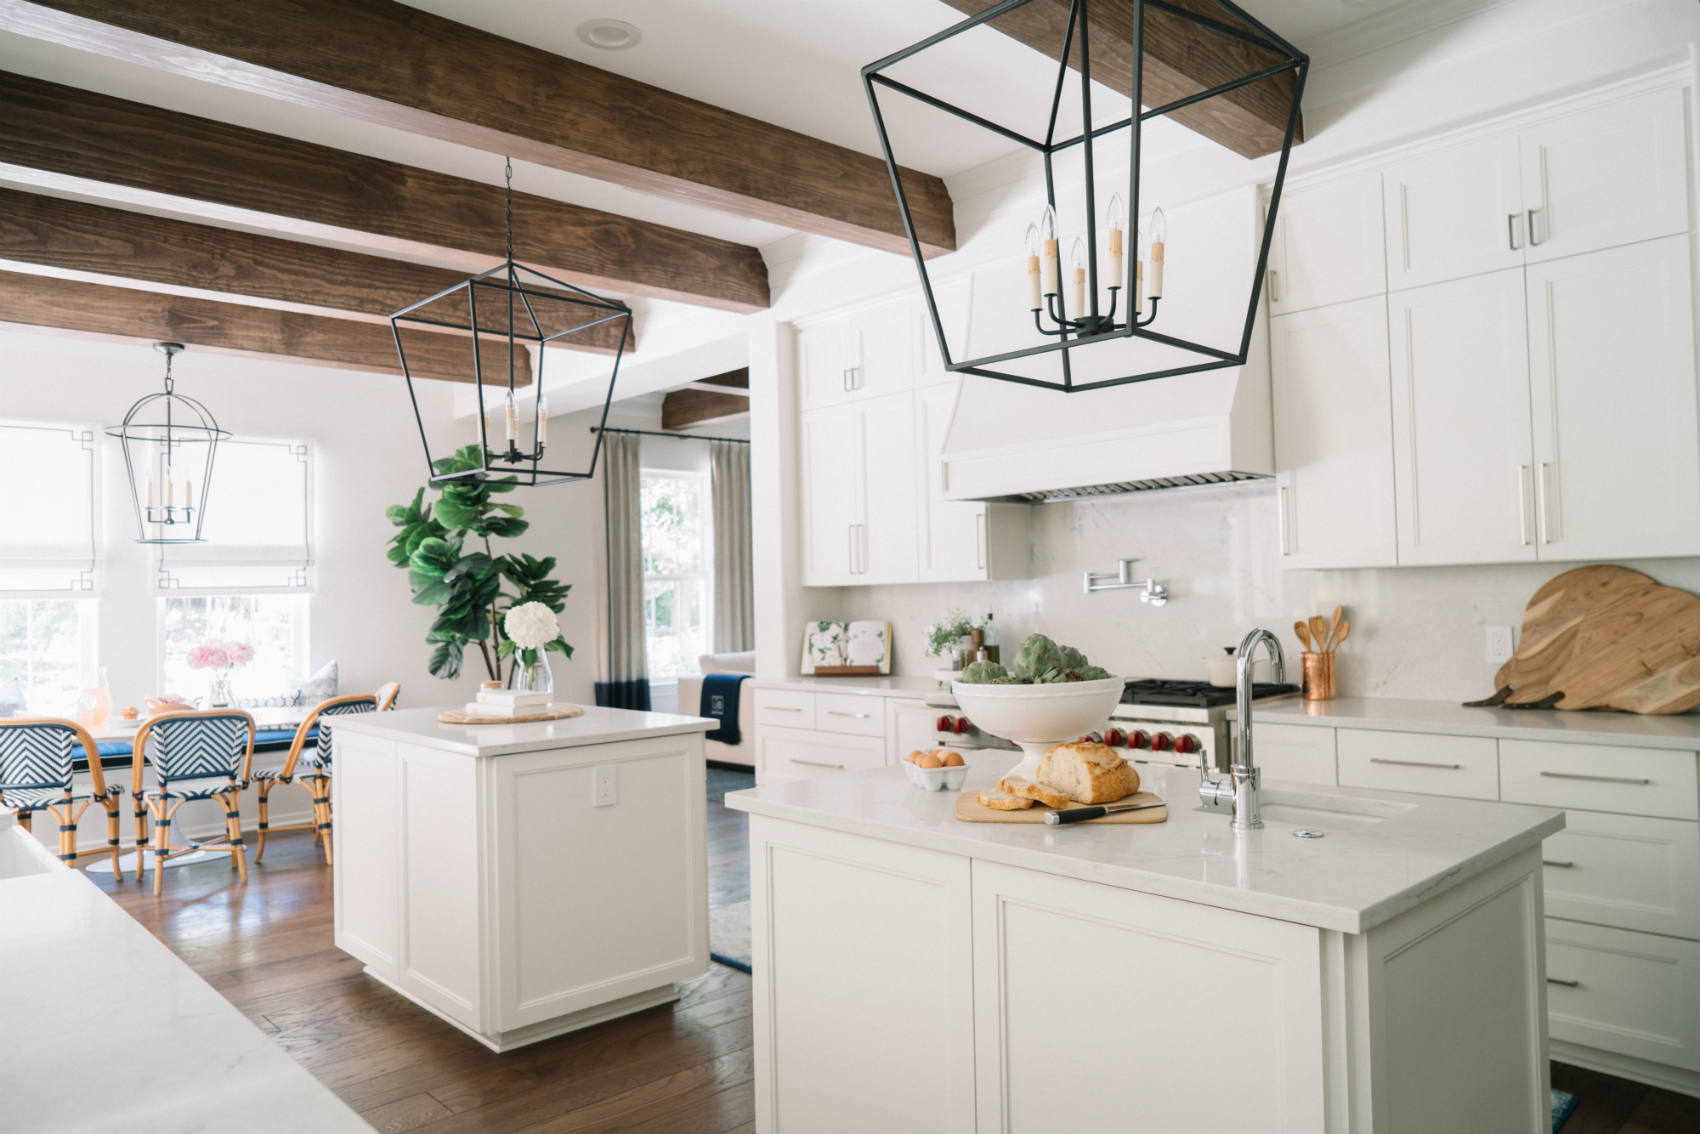 'Villa Blanca' Kitchen, Dualing Islands, Iron Pendants, Wood Beams by Heather Scott Home & Design